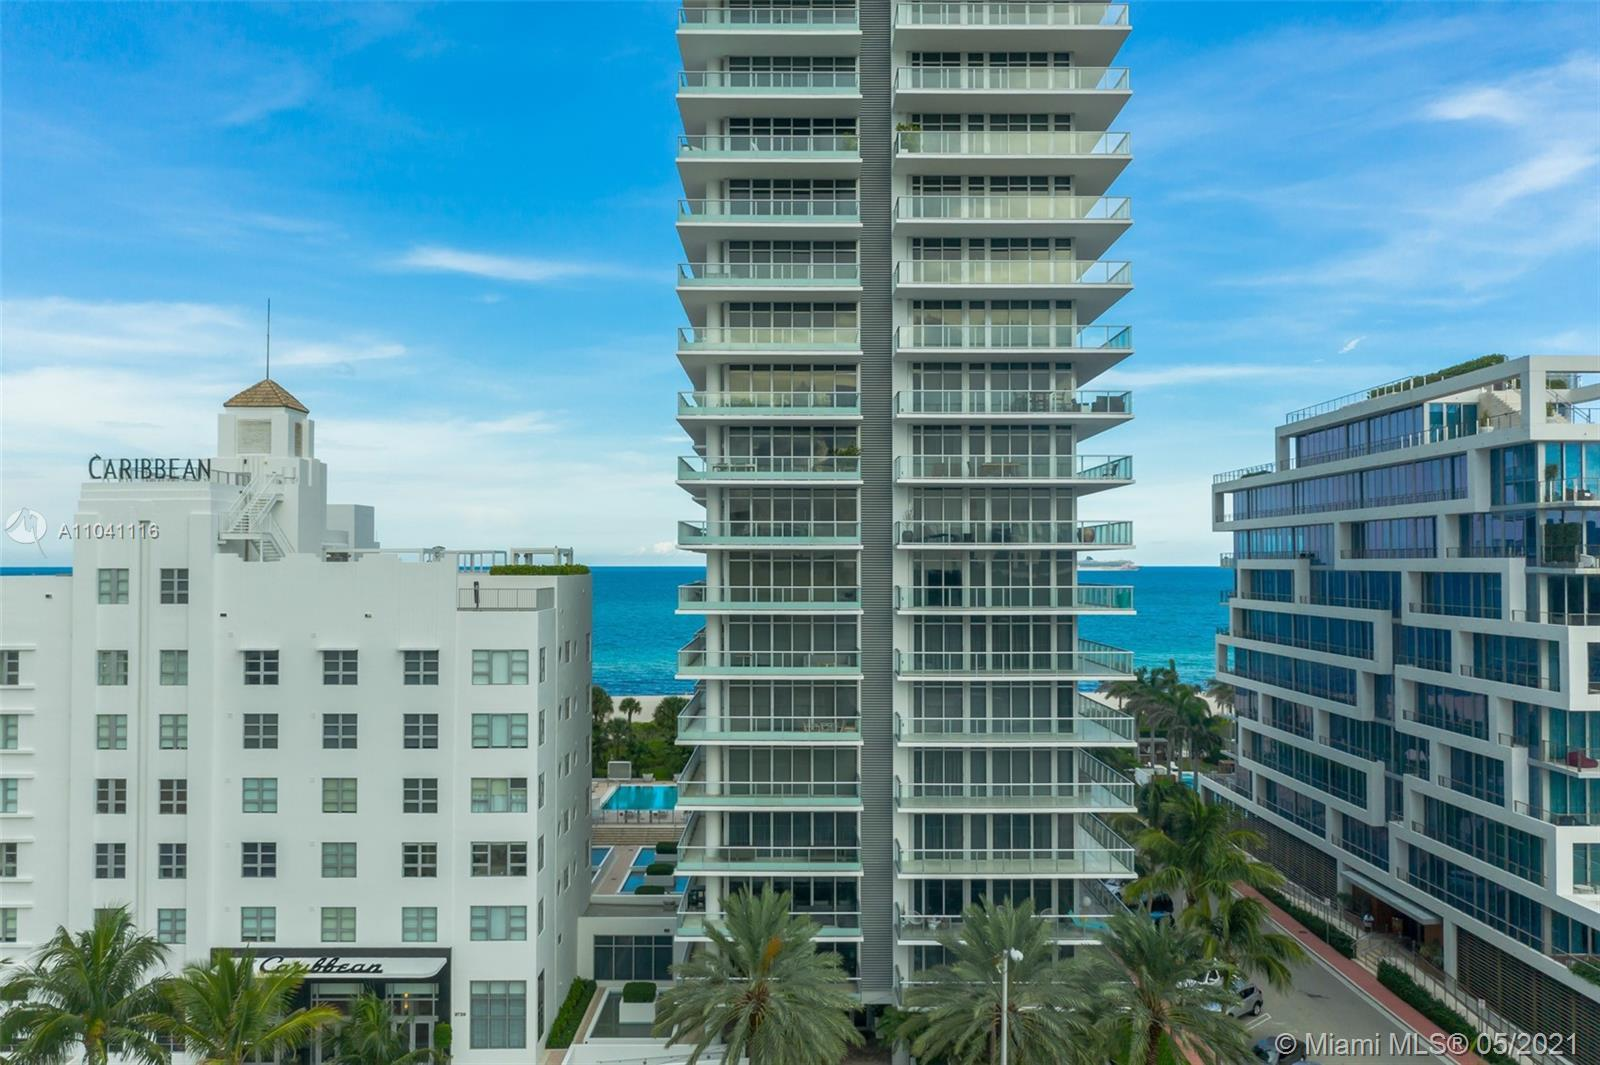 ONLY APT LEFT FROM MUCH SOUGHT AFTER 03 LINE in the Building: Private & secure living at its best in